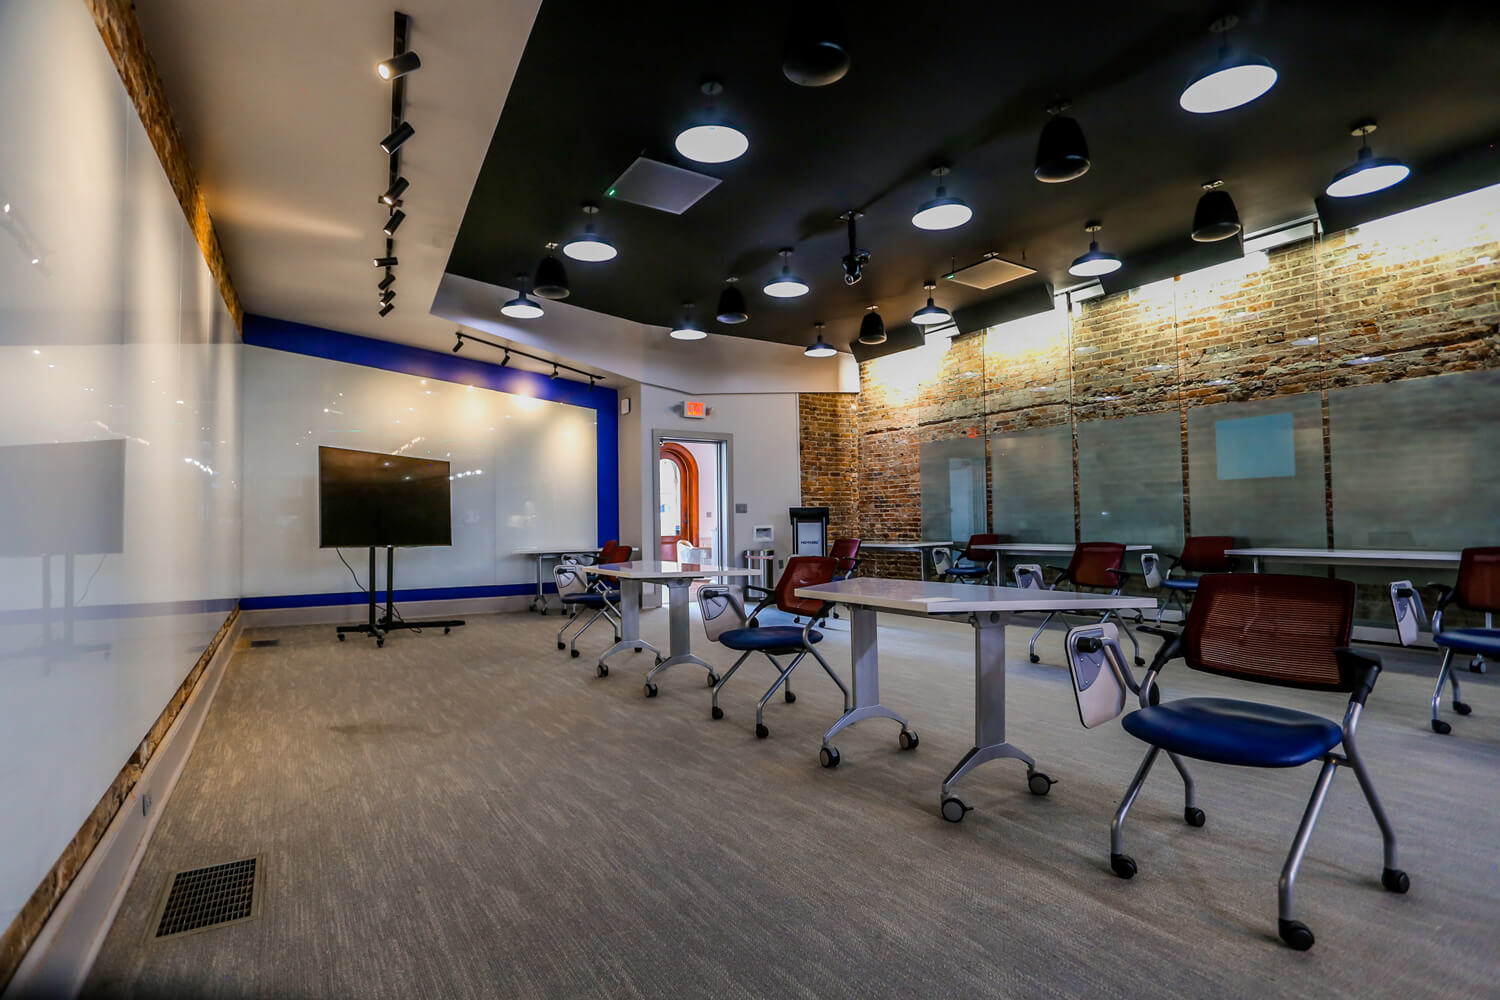 MGMWerx Collaboration Space - Classroom with Display Boards - Designed by Foshee Architecture